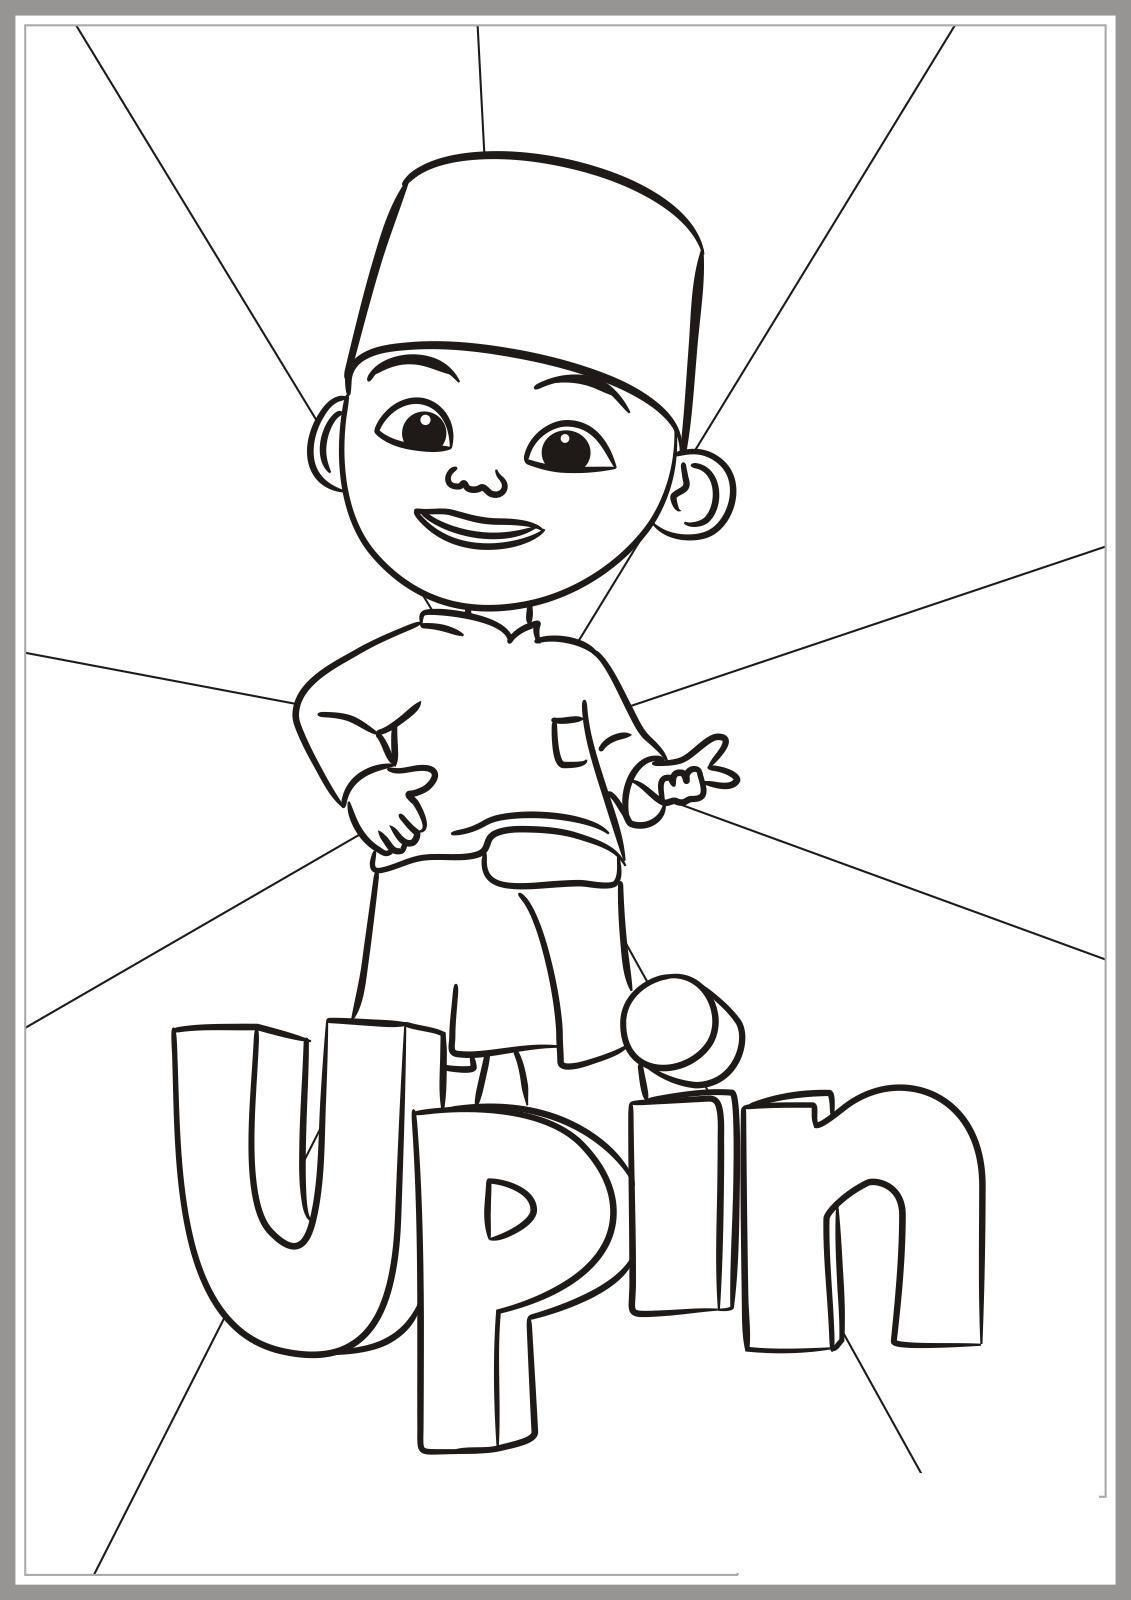 Coloring Page Upin Ipin Coloring Pages Coloring Books Coloring For Kids